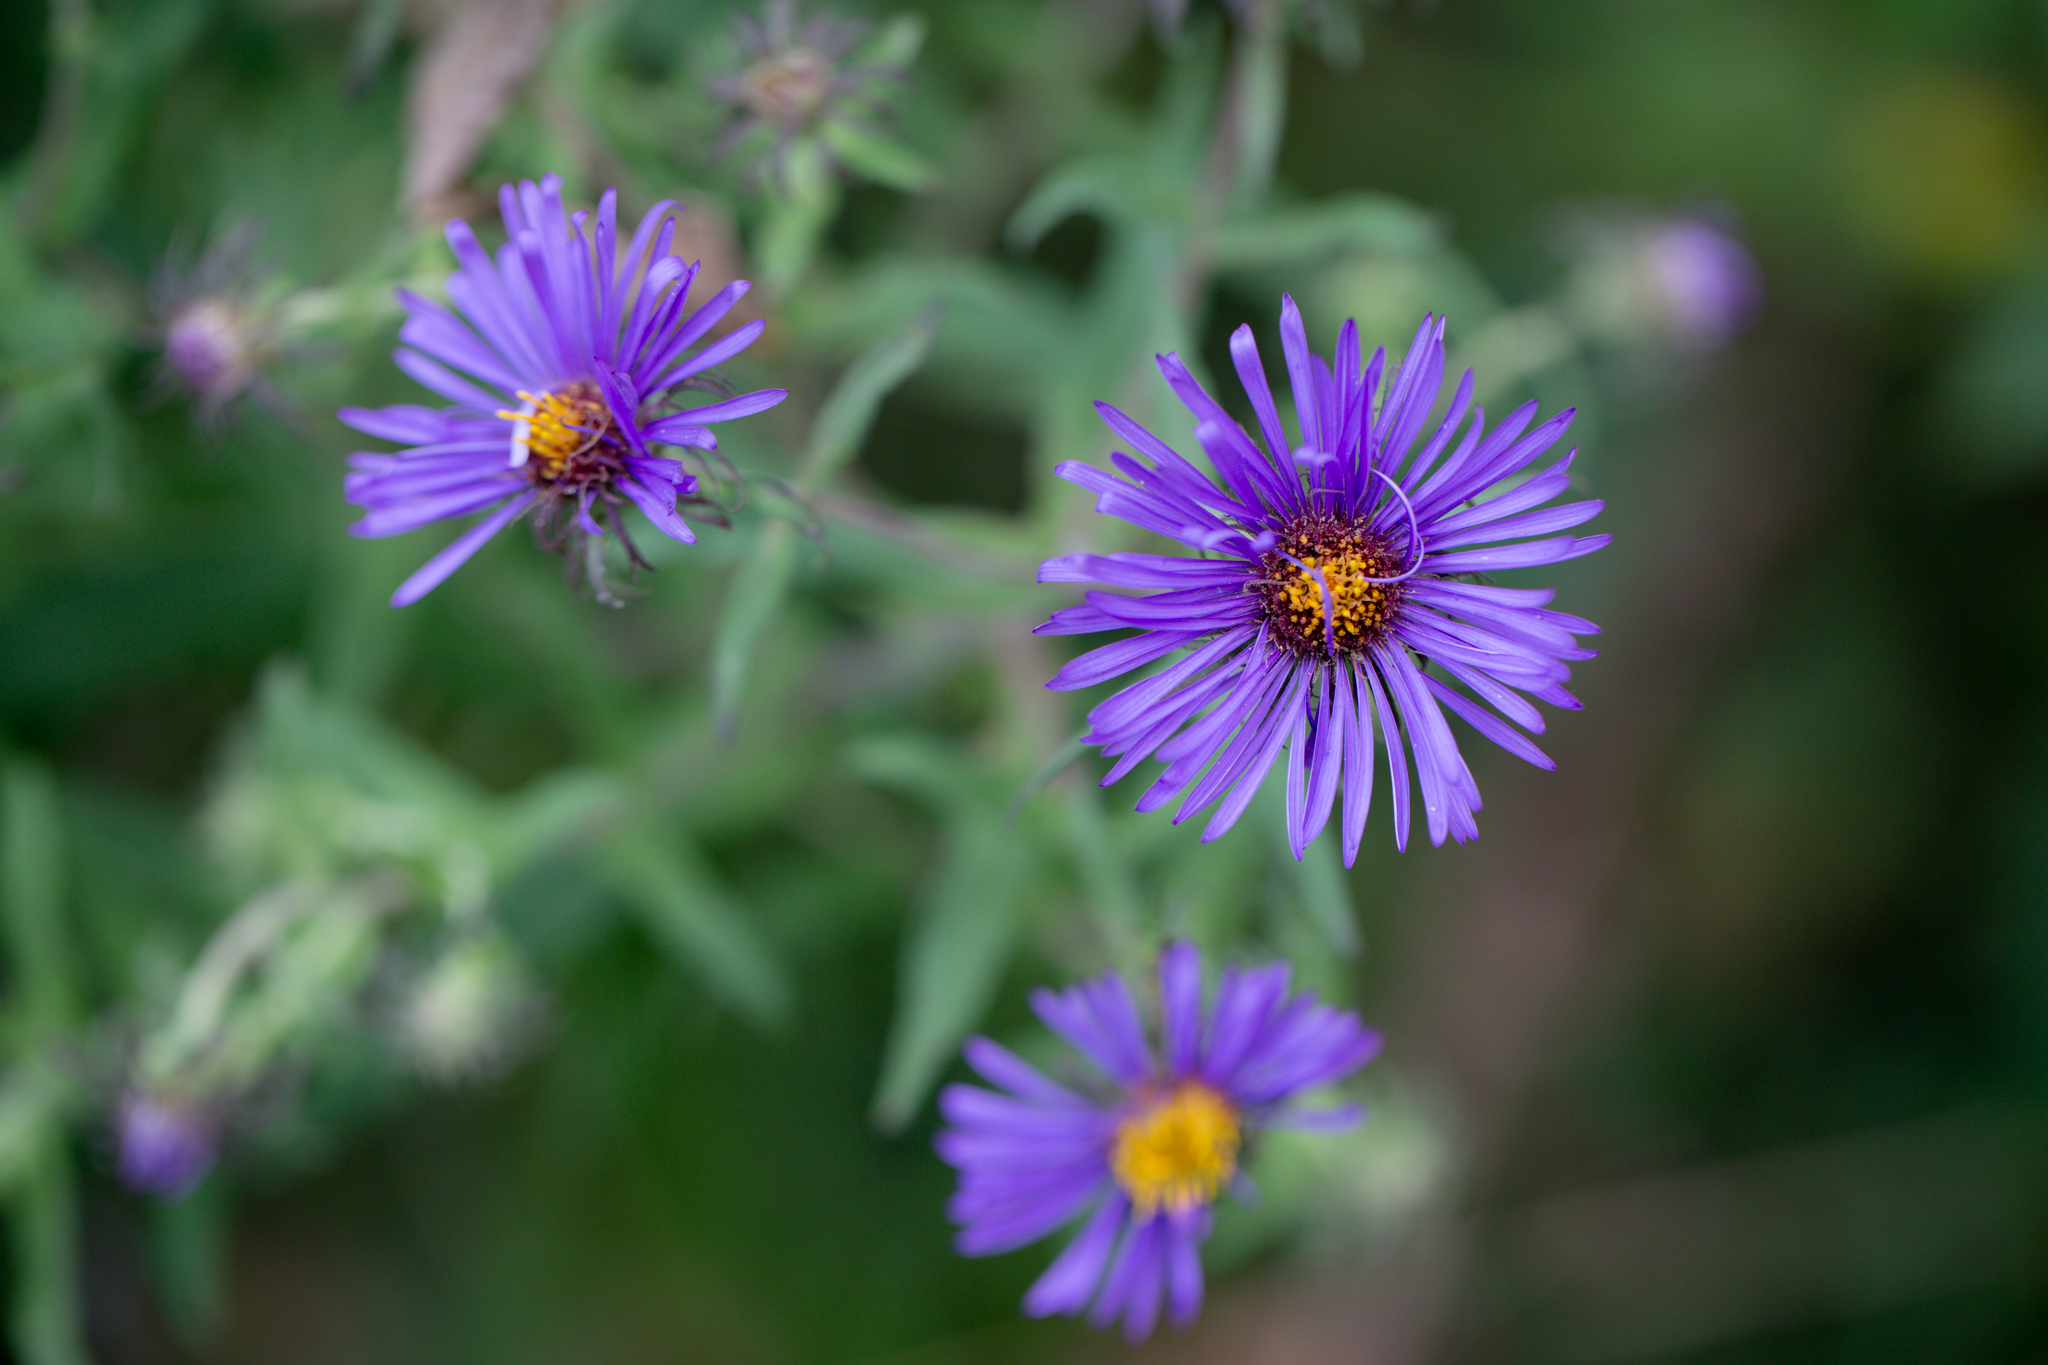 252 // 365 New England Asters by the mailbox